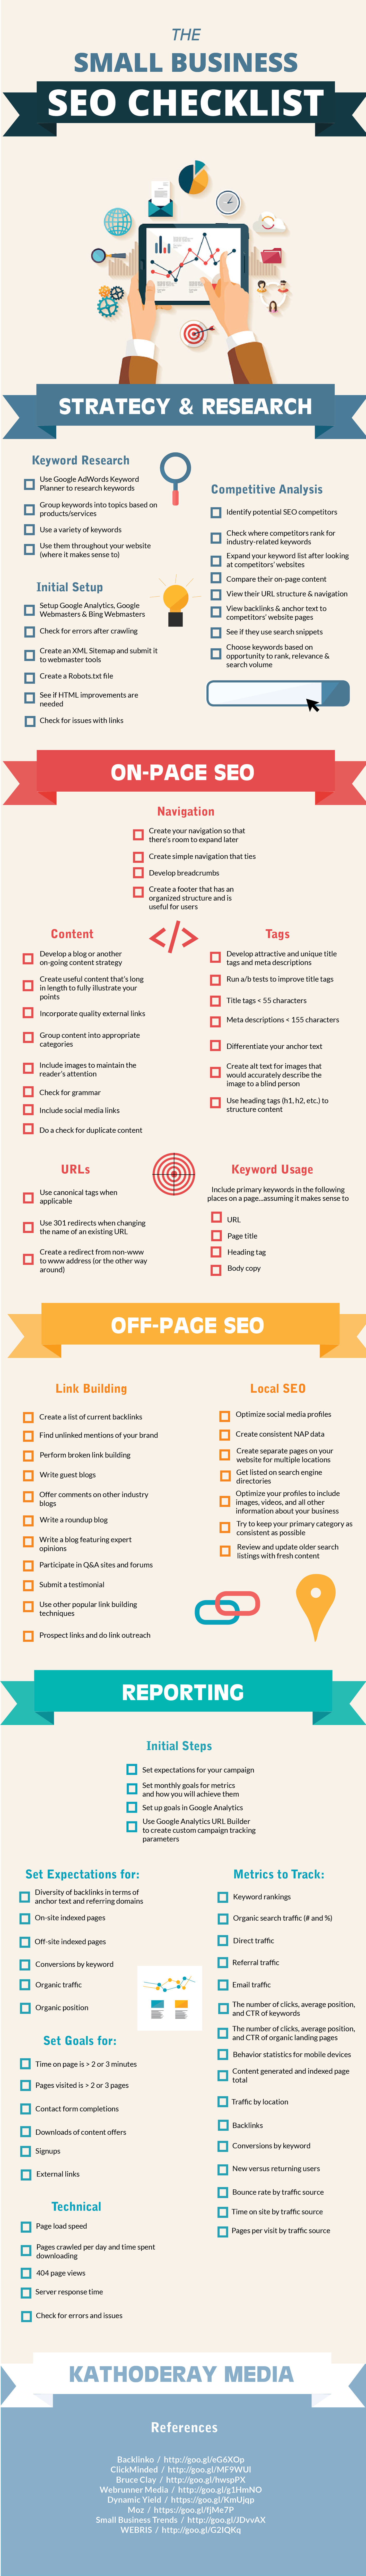 Small Business SEO Checklist [Infographic & Template]